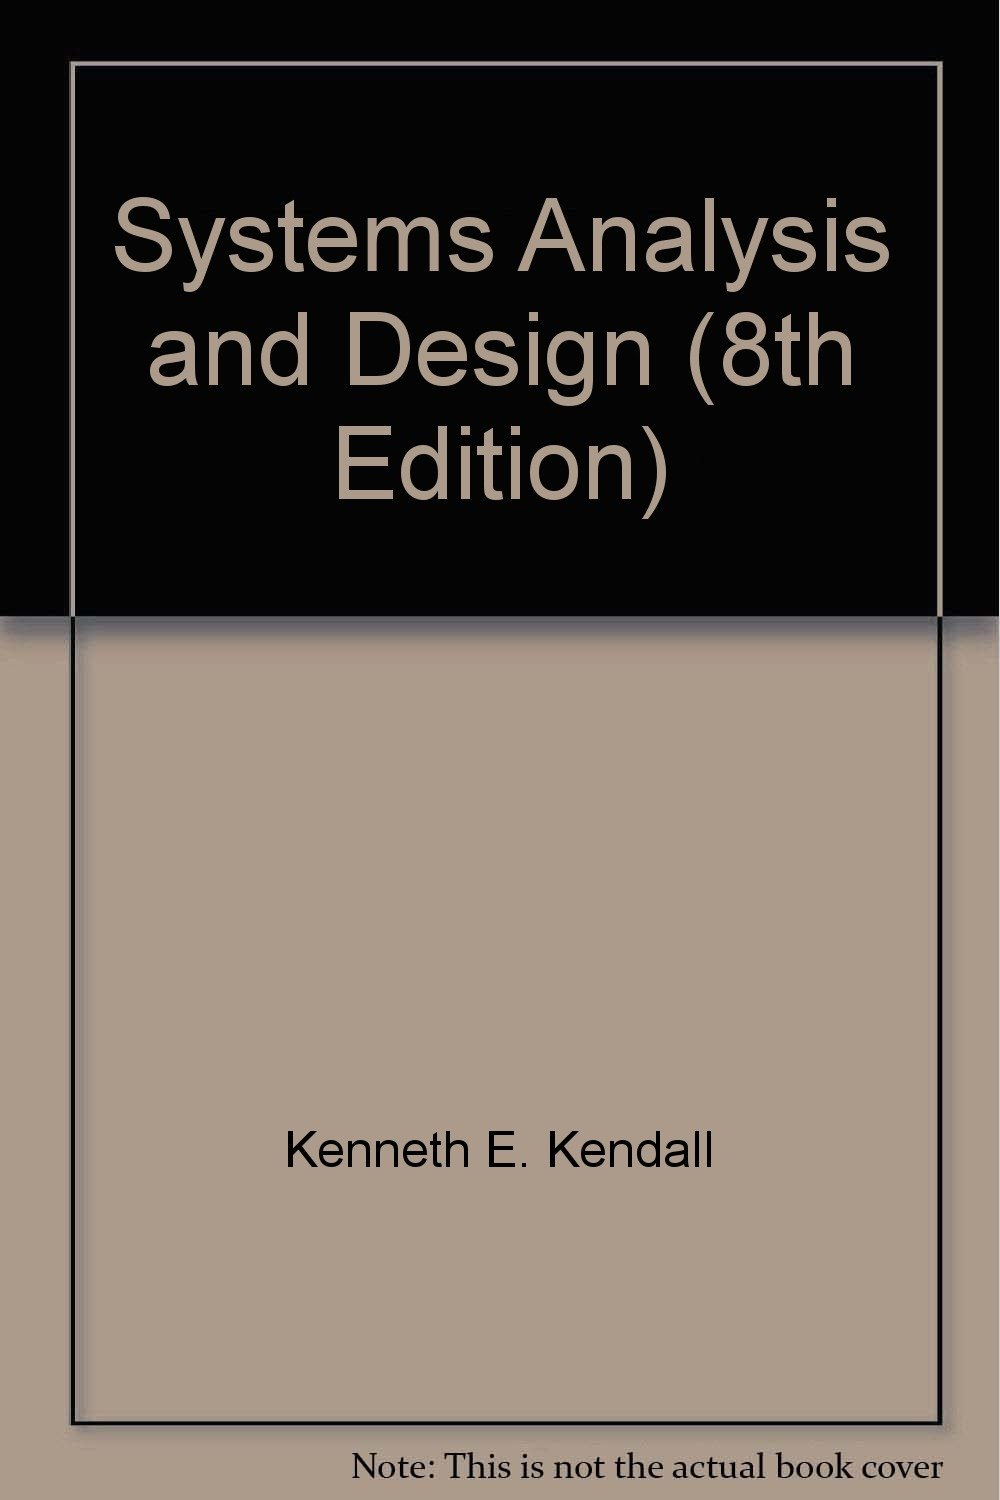 Systems Analysis and Design (8th Edition): Kenneth E. Kendall: Amazon.com:  Books